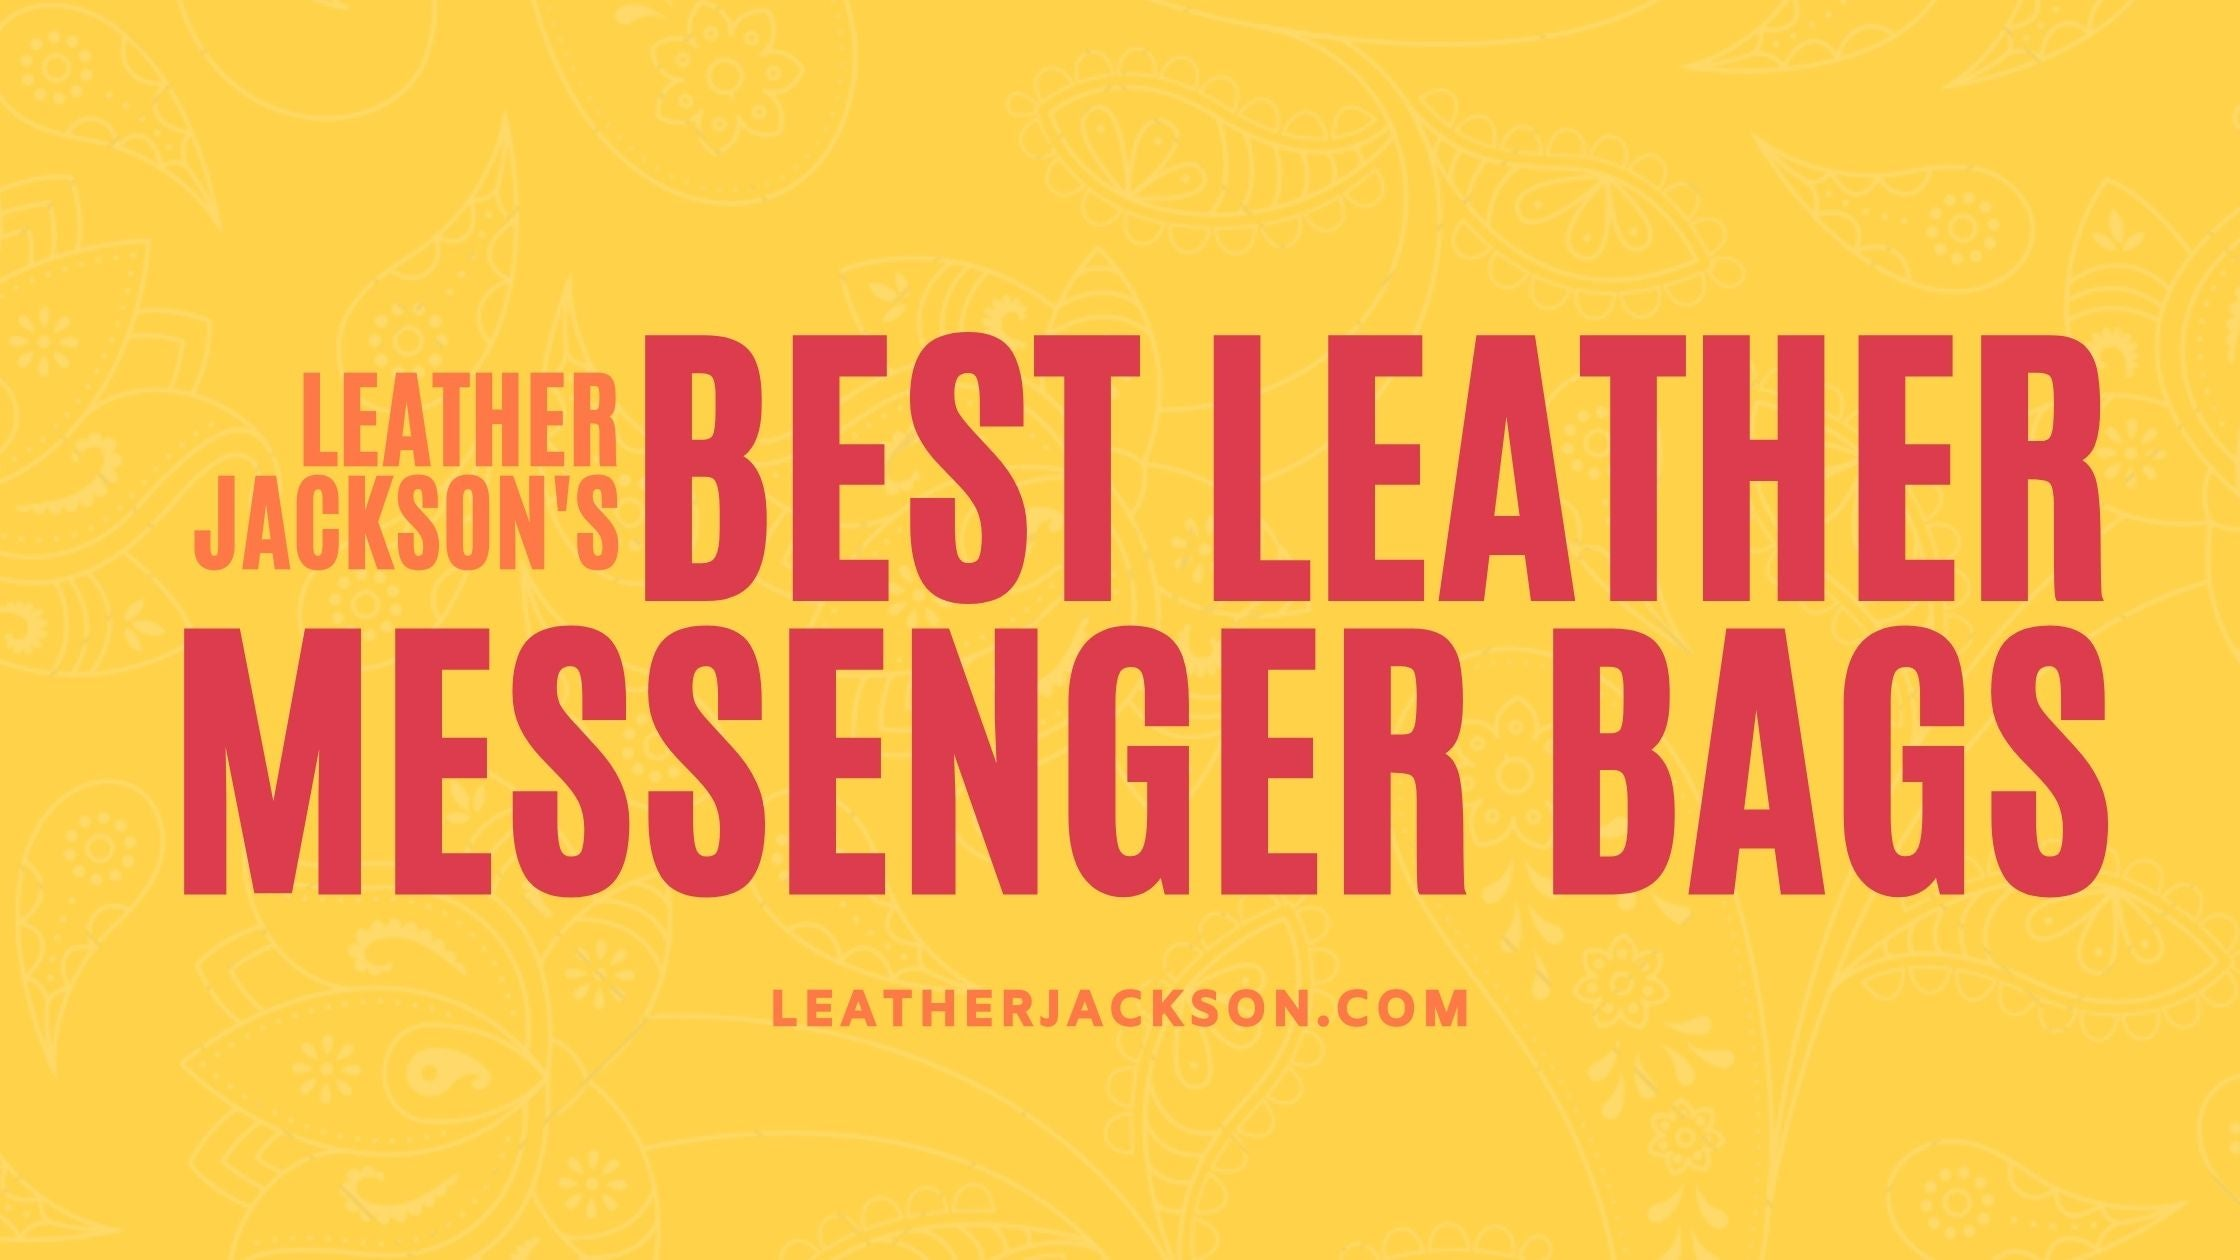 leather messenger bags for men and women, leather bags for men, genuine leather messenger bags